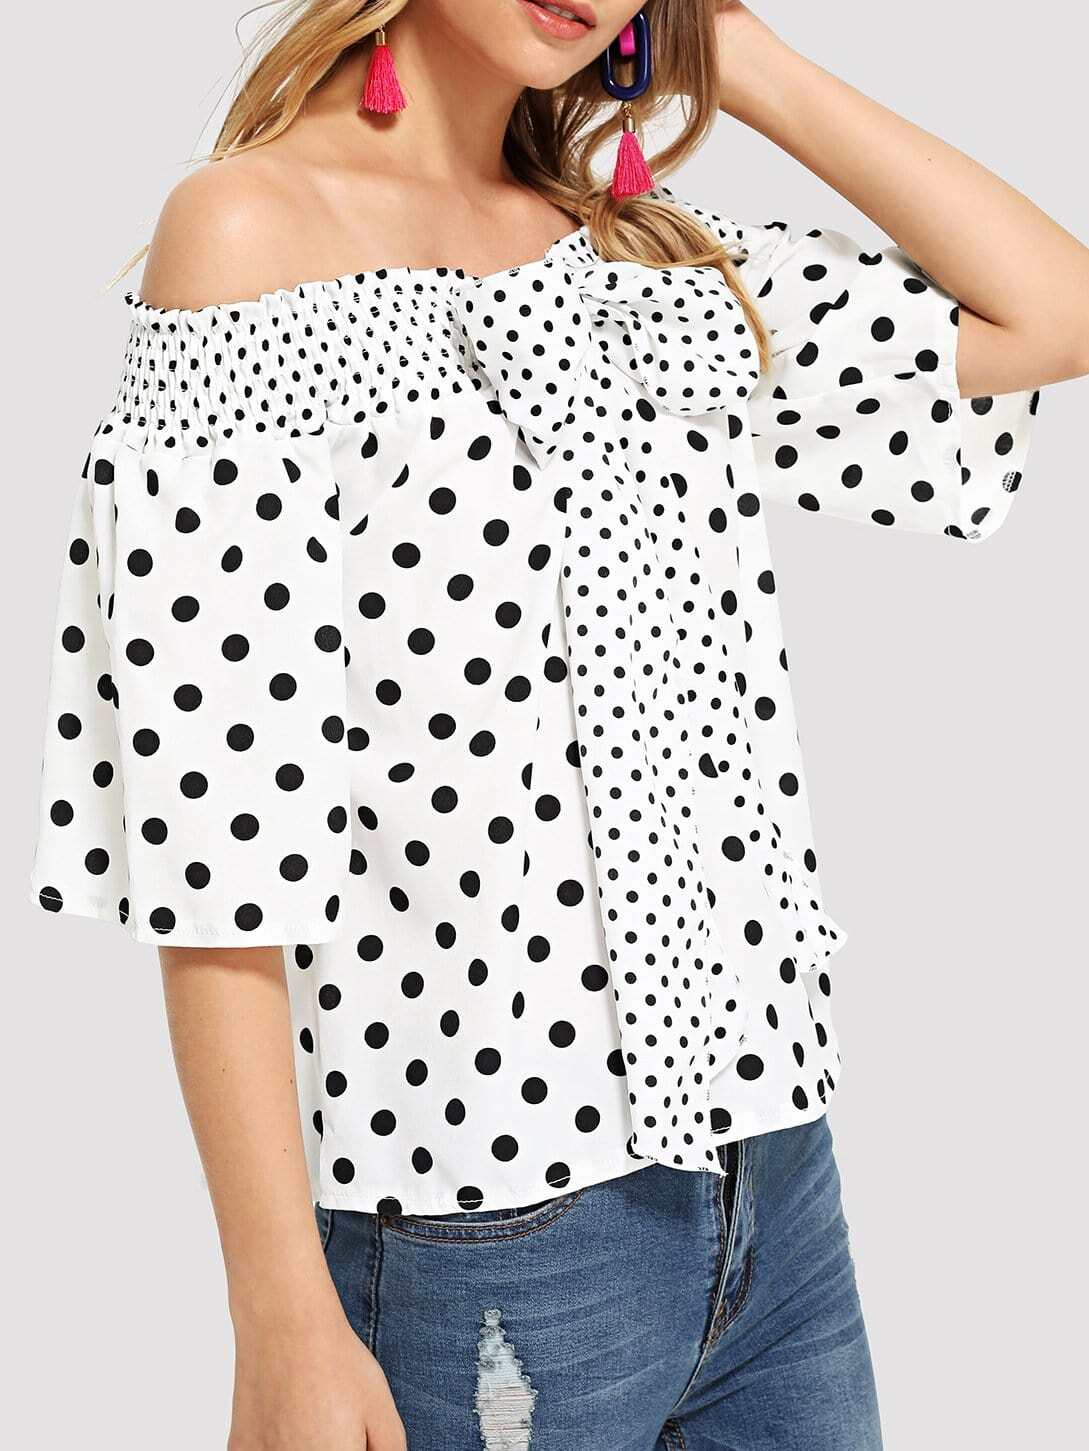 где купить Off Shoulder Polka Dot Bow Tie Blouse дешево